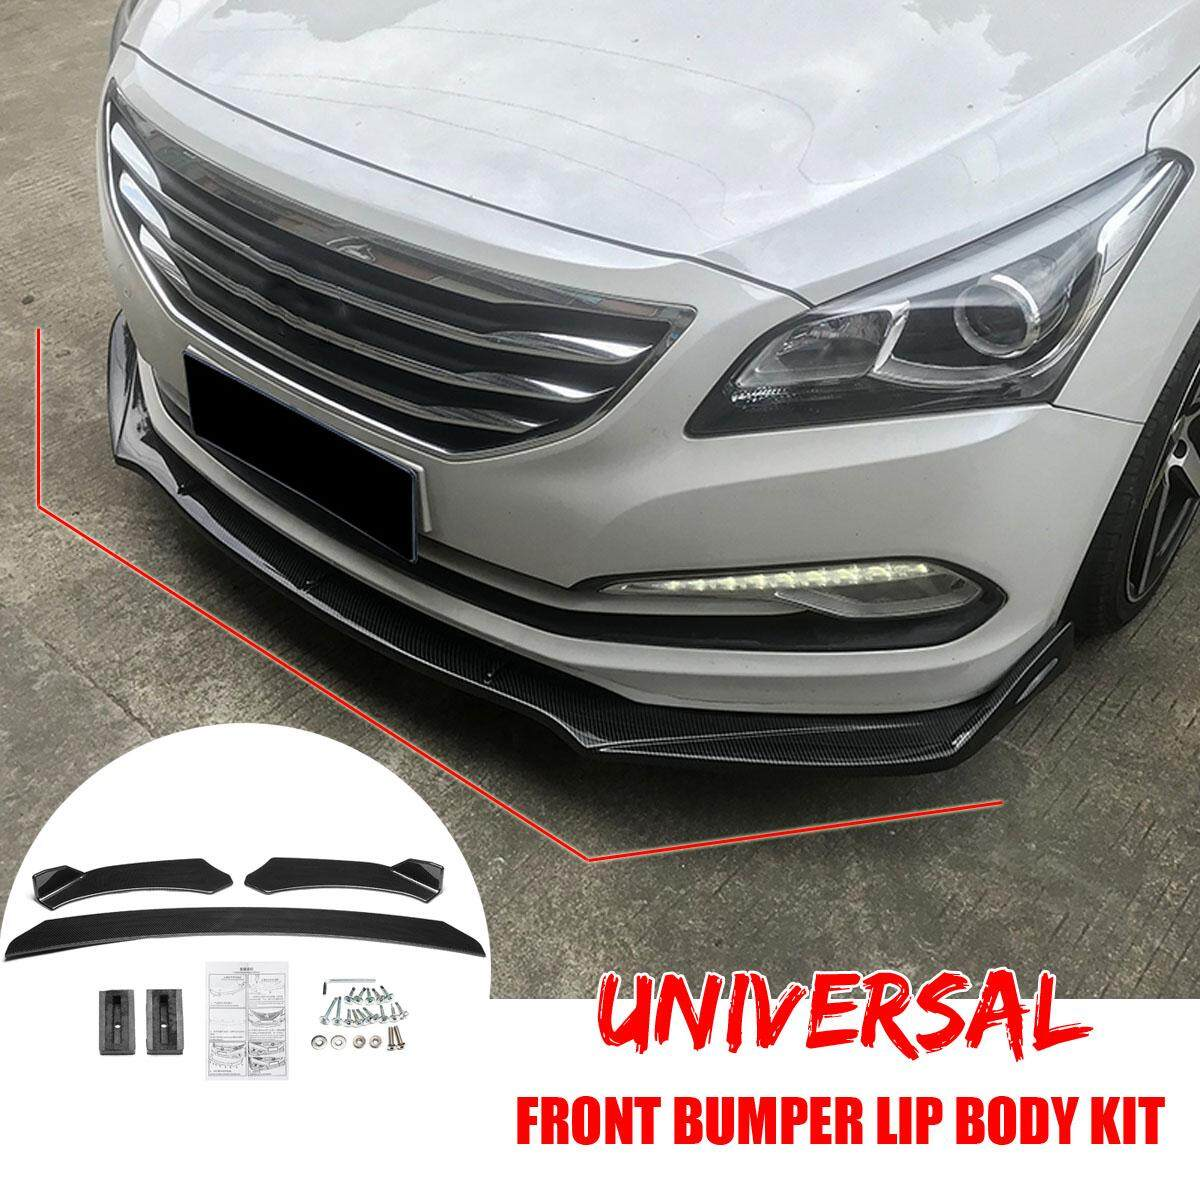 Universal Three Stage Carbon Fiber Detachable Front Bumper Lip Body Kit For Car Van By Audew.